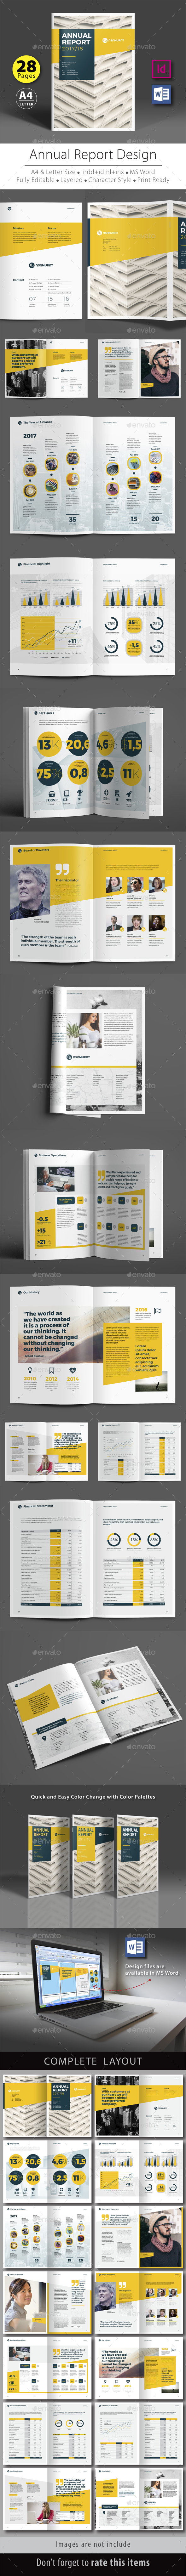 Annual Report Design Template V.7 - Corporate Brochures